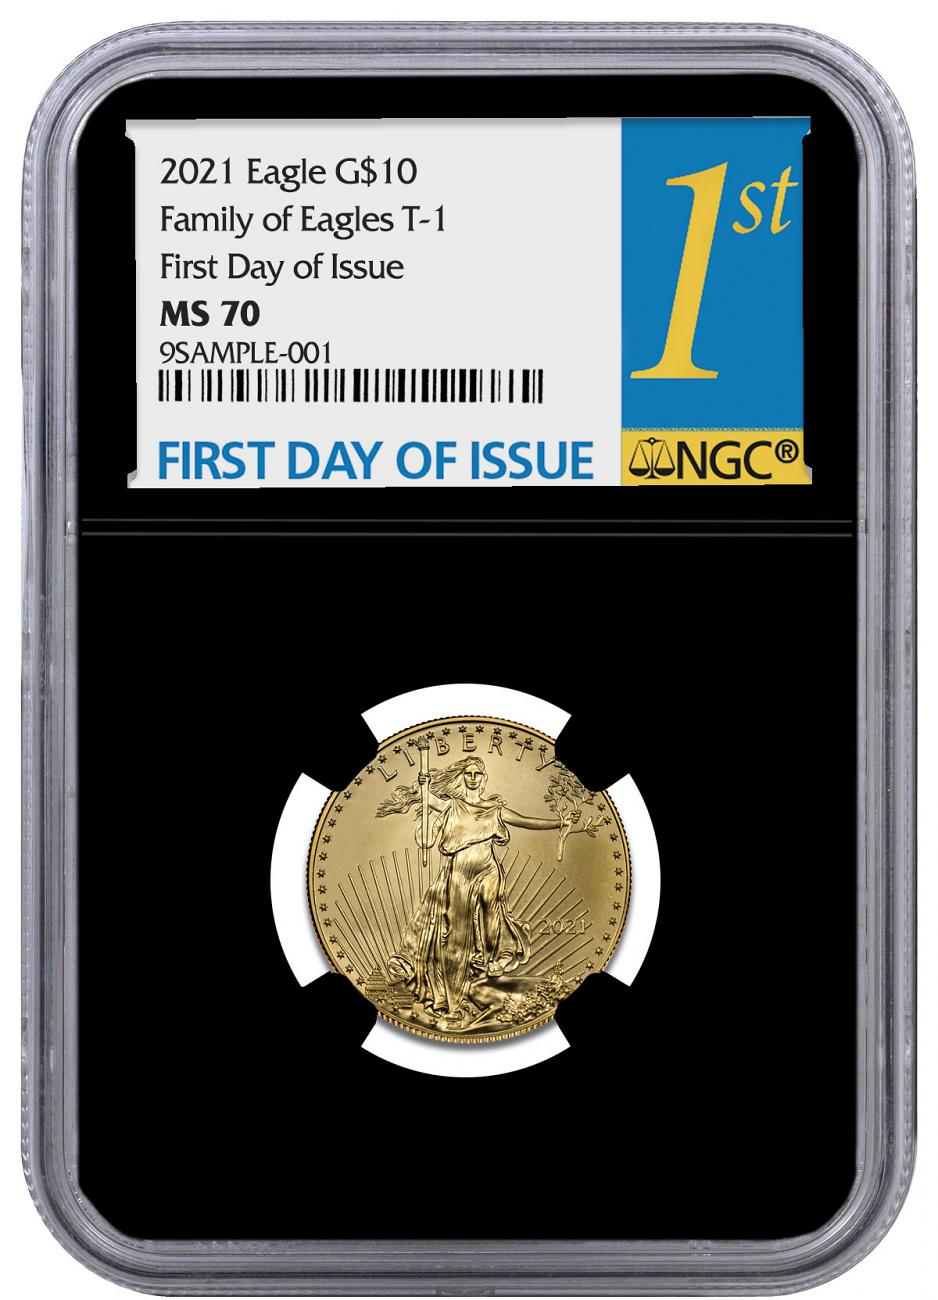 2021 1/4 oz Gold American Eagle T-1 $10 Coin NGC MS70 FDI Black Core Holder 1st Day Label